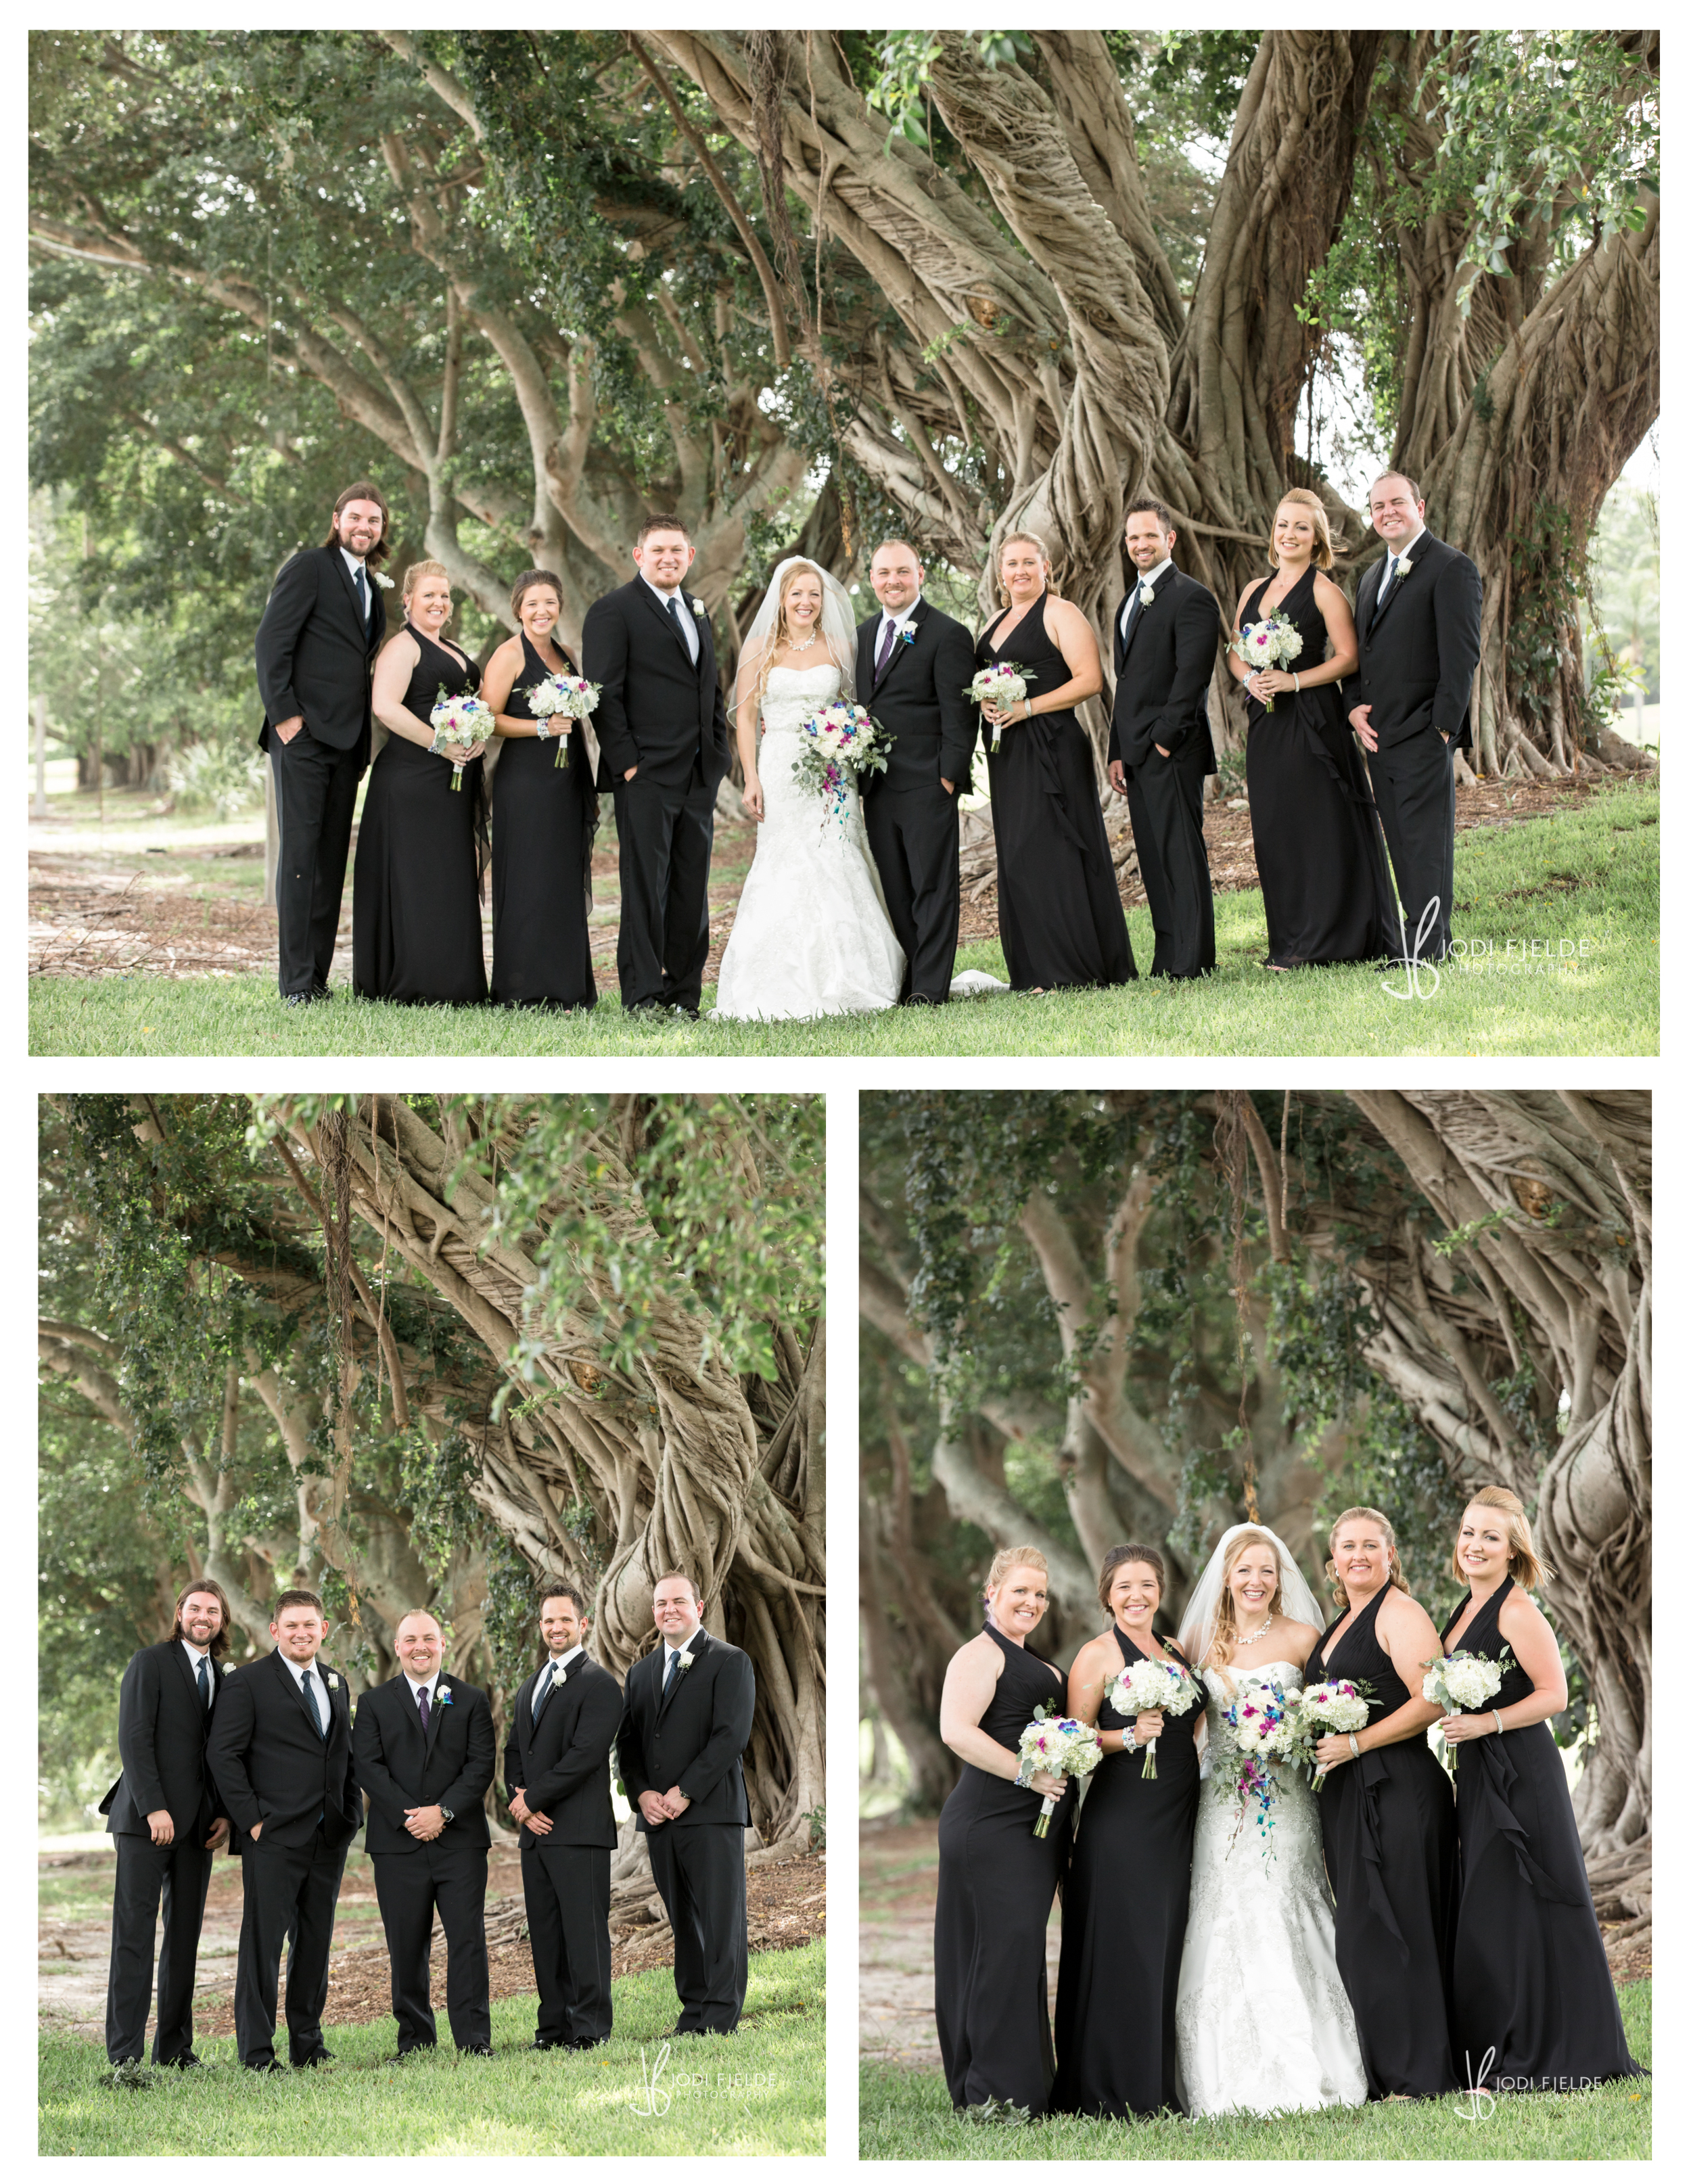 Morikami_Delray_Beach_Golf_Club_Wedding_Jenna & Brian 16.jpg